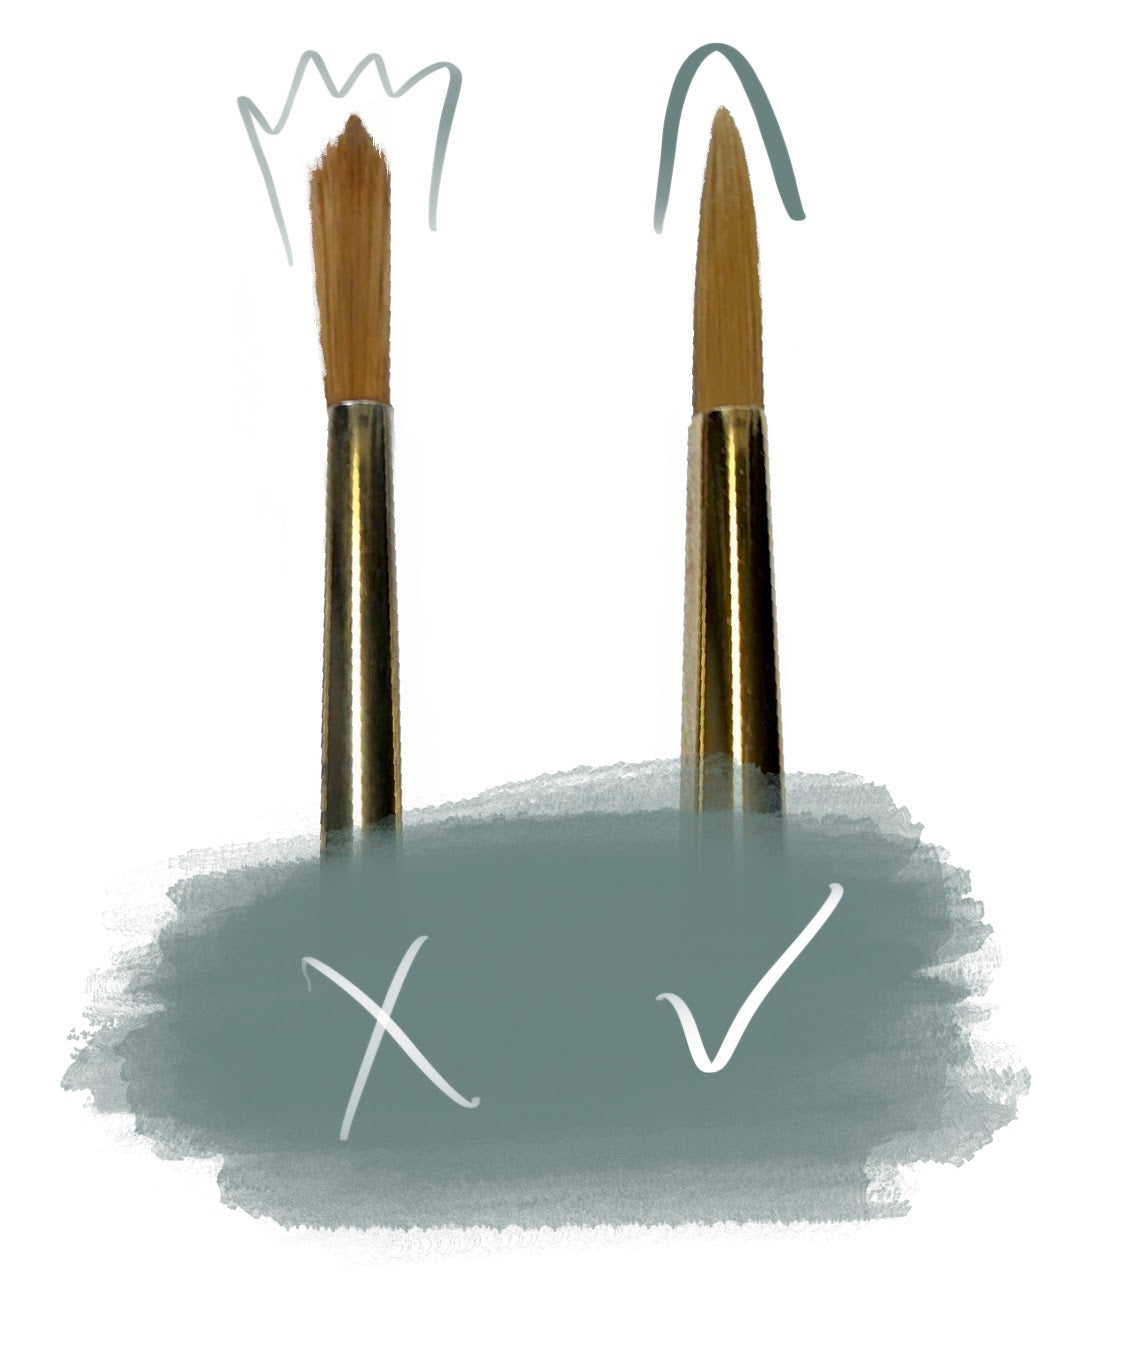 a diagram showing frayed bristles next to pointed bristles